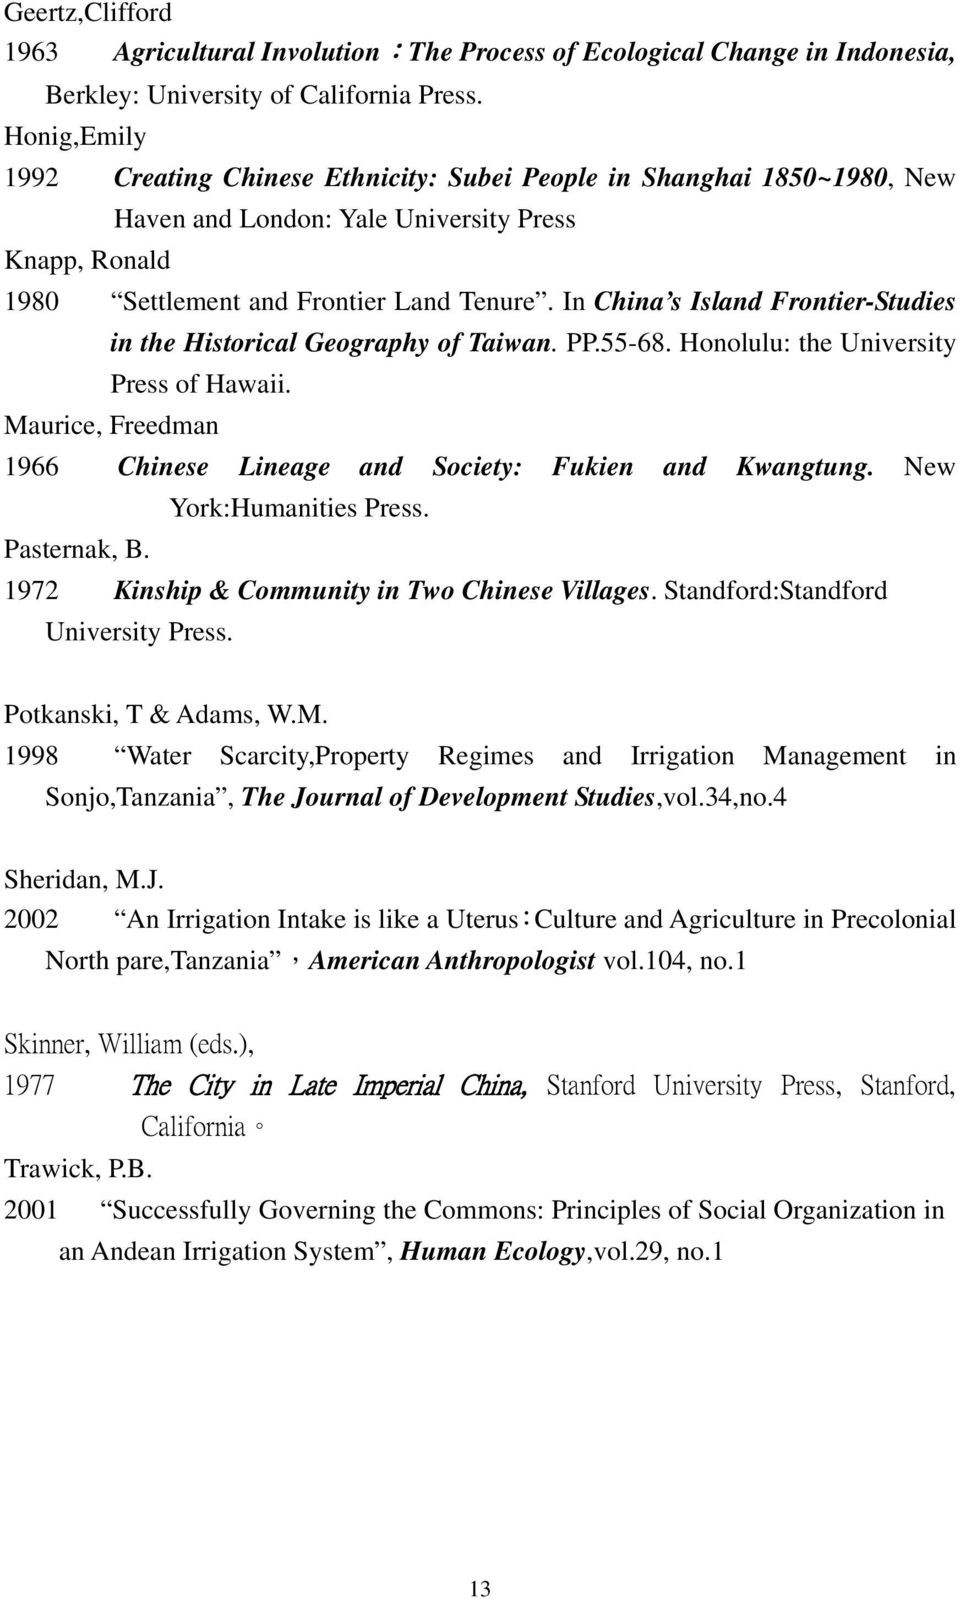 In China s Island Frontier-Studies in the Historical Geography of Taiwan. PP.55-68. Honolulu: the University Press of Hawaii. Maurice, Freedman 1966 Chinese Lineage and Society: Fukien and Kwangtung.